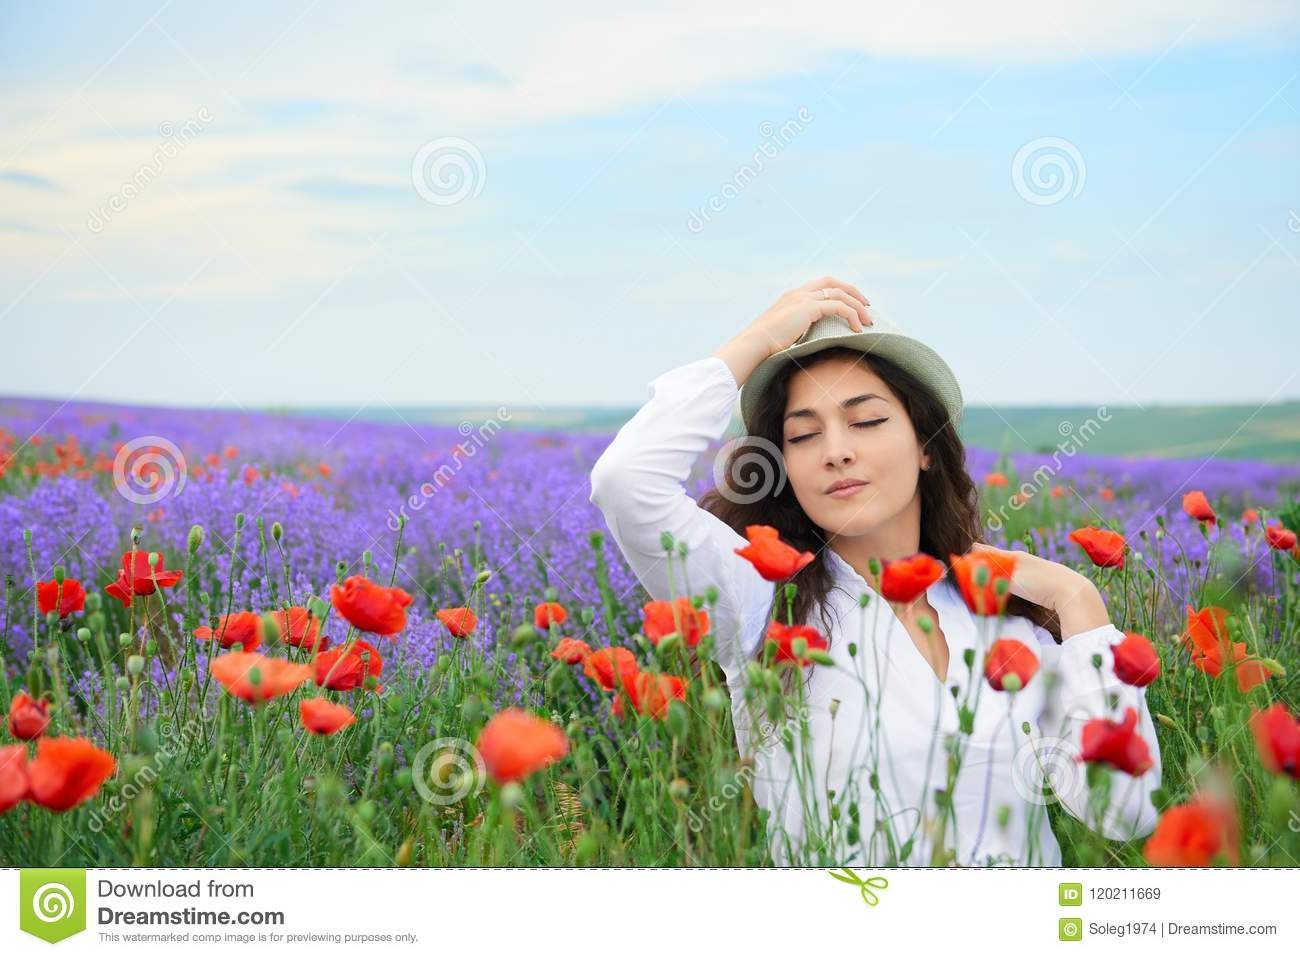 Young girl is in the lavender field with red poppy flowers, beautiful summer landscape